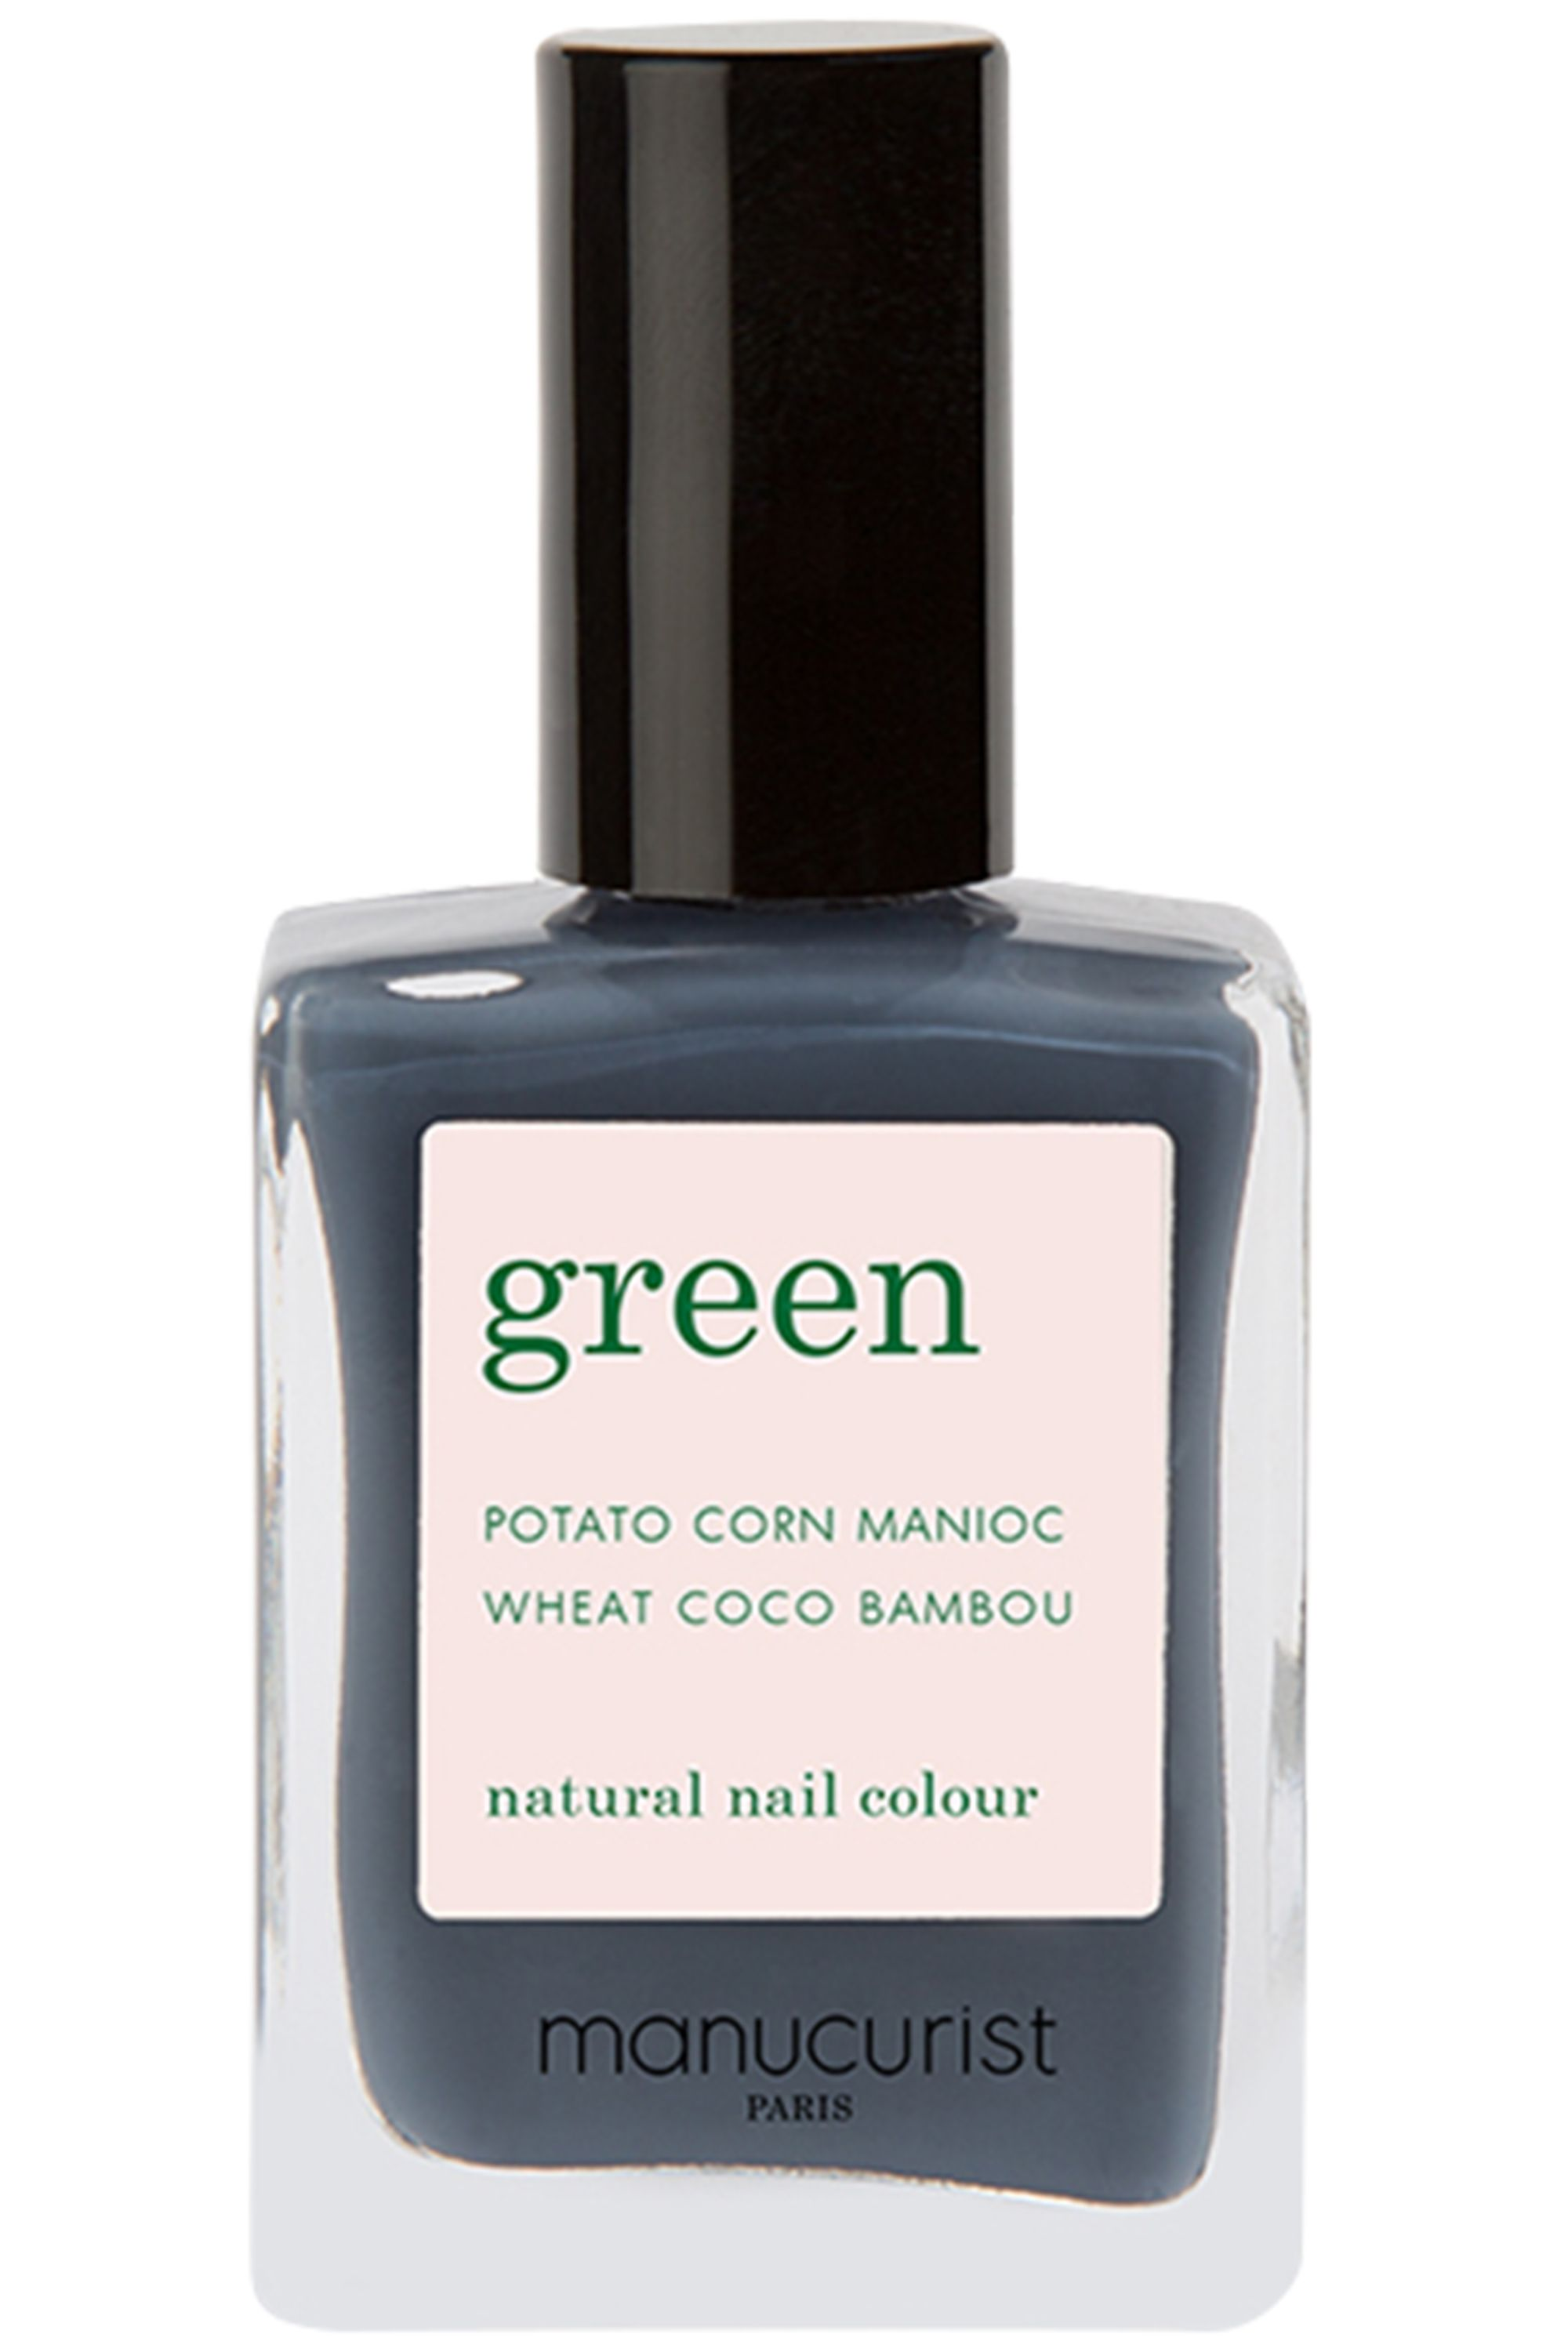 Blissim : Manucurist - Vernis Green - Poppy Seed